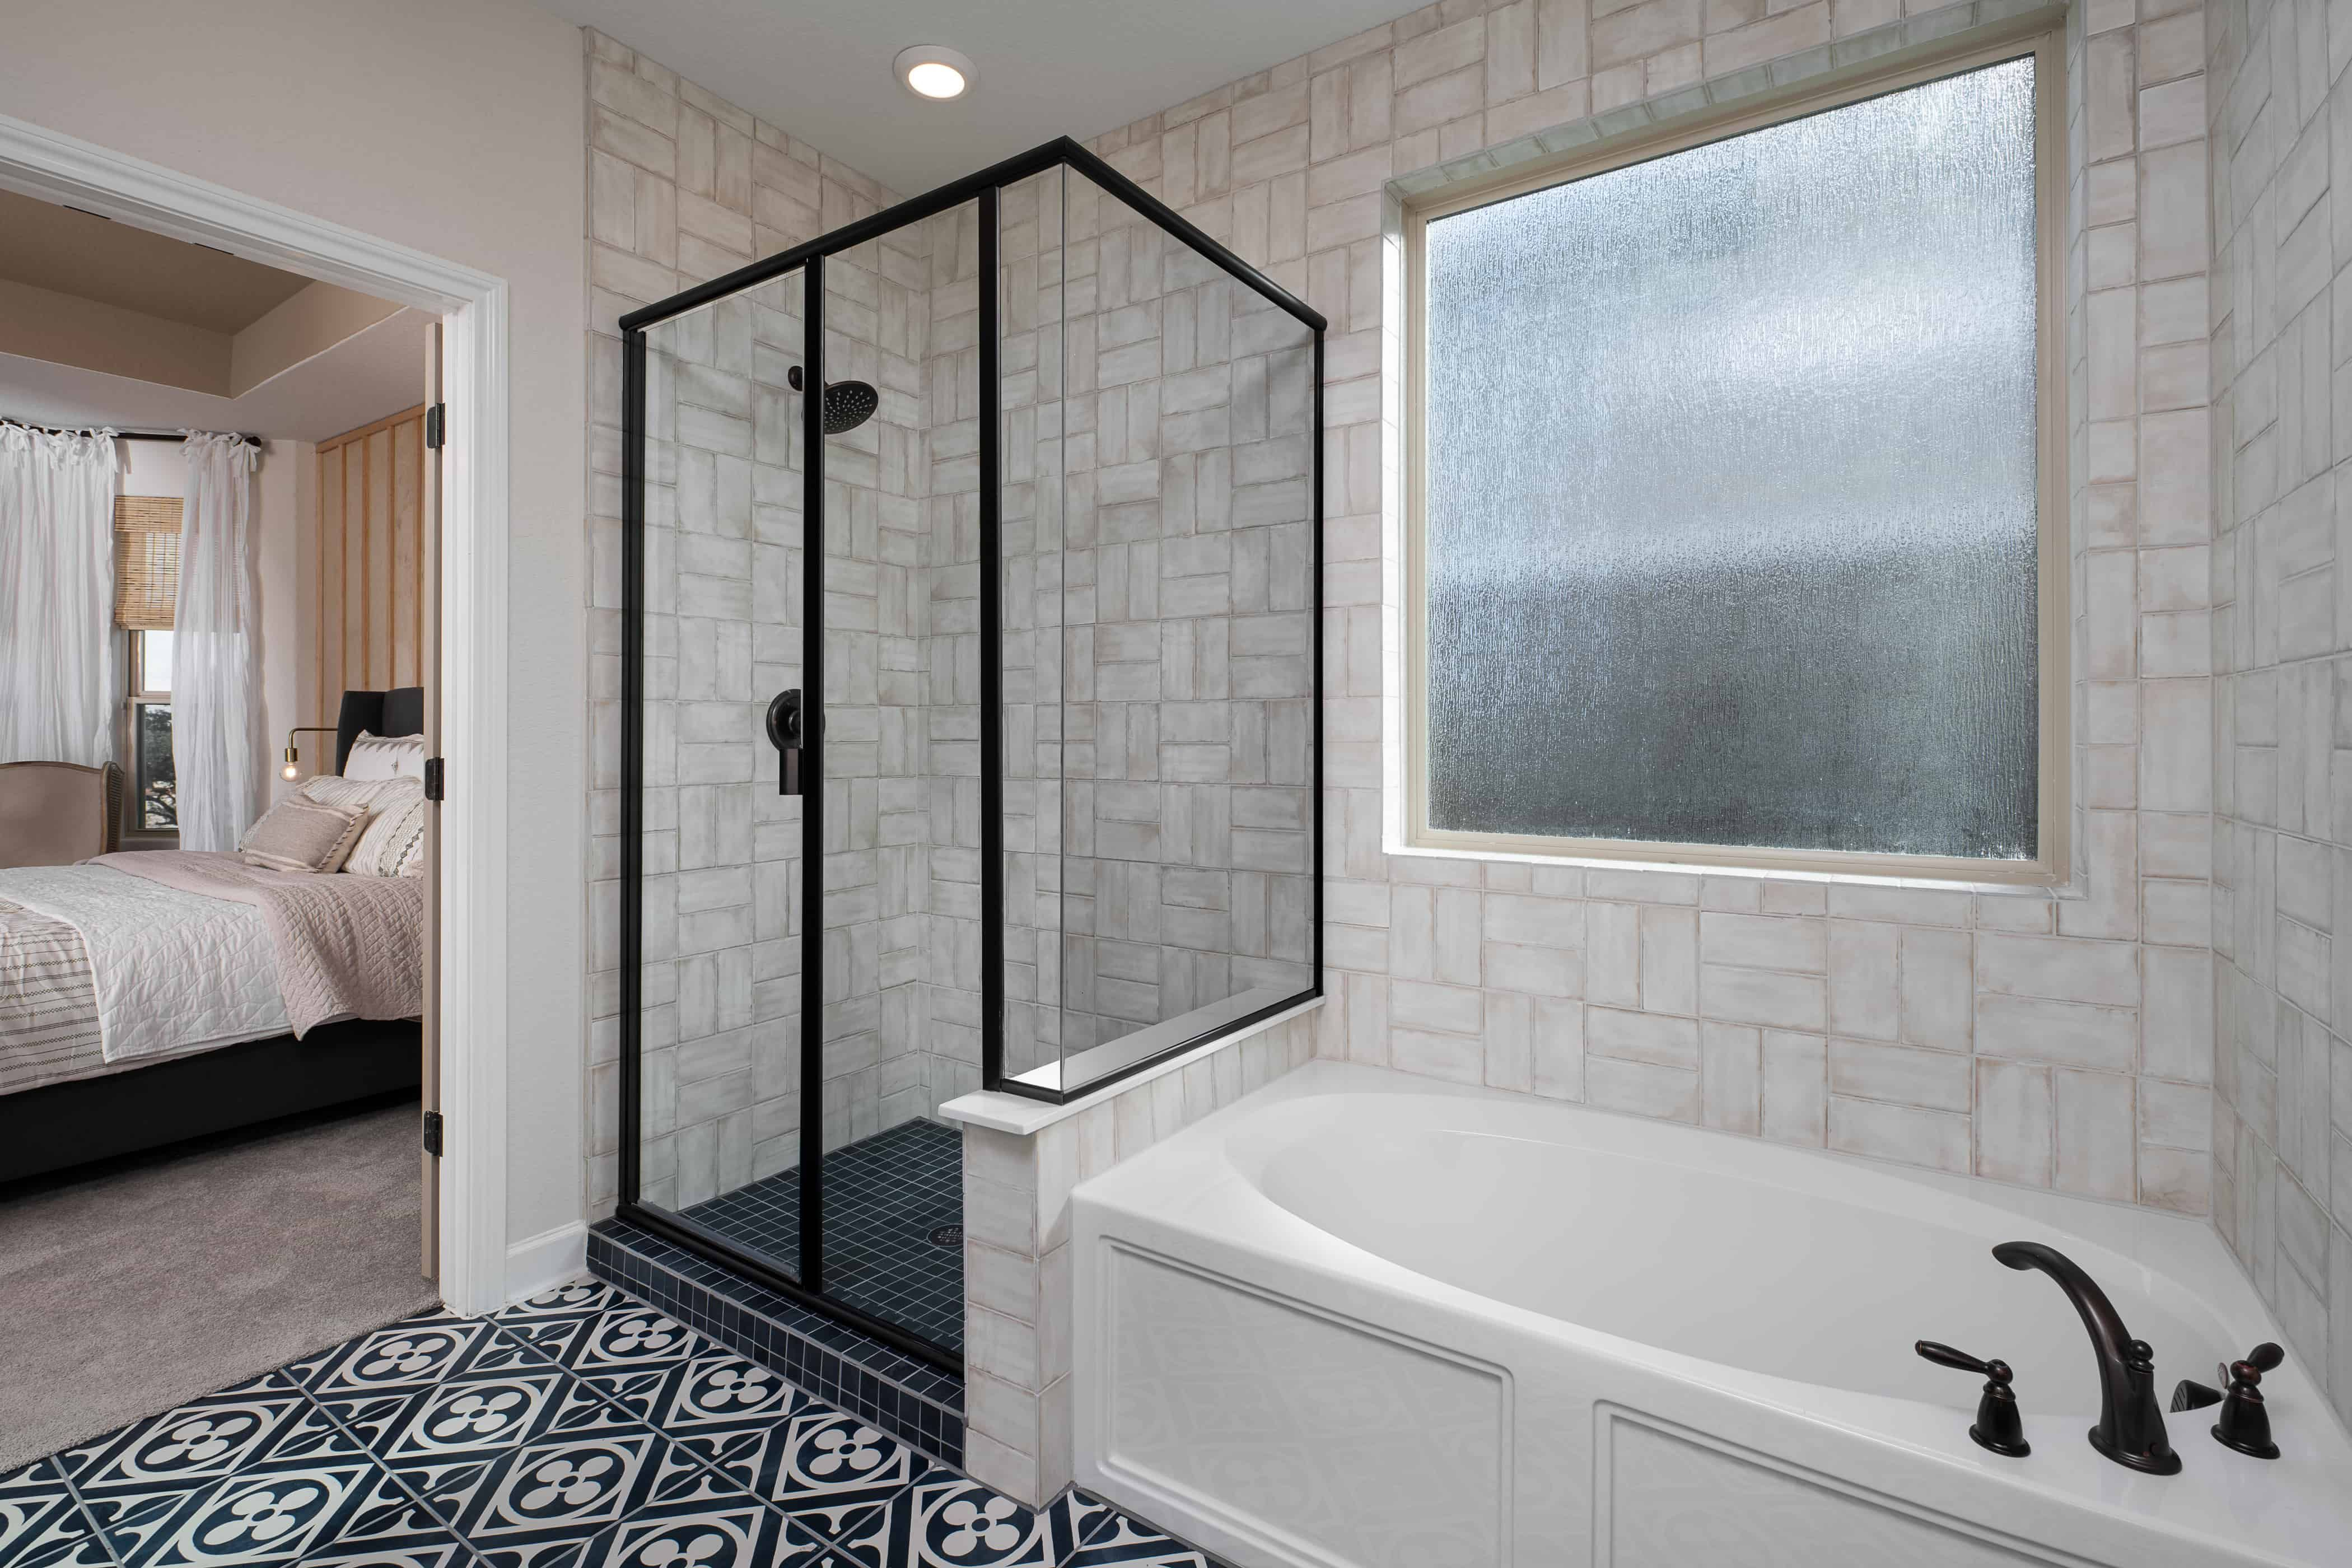 Bathroom featured in the Odessa By Ashton Woods in San Antonio, TX